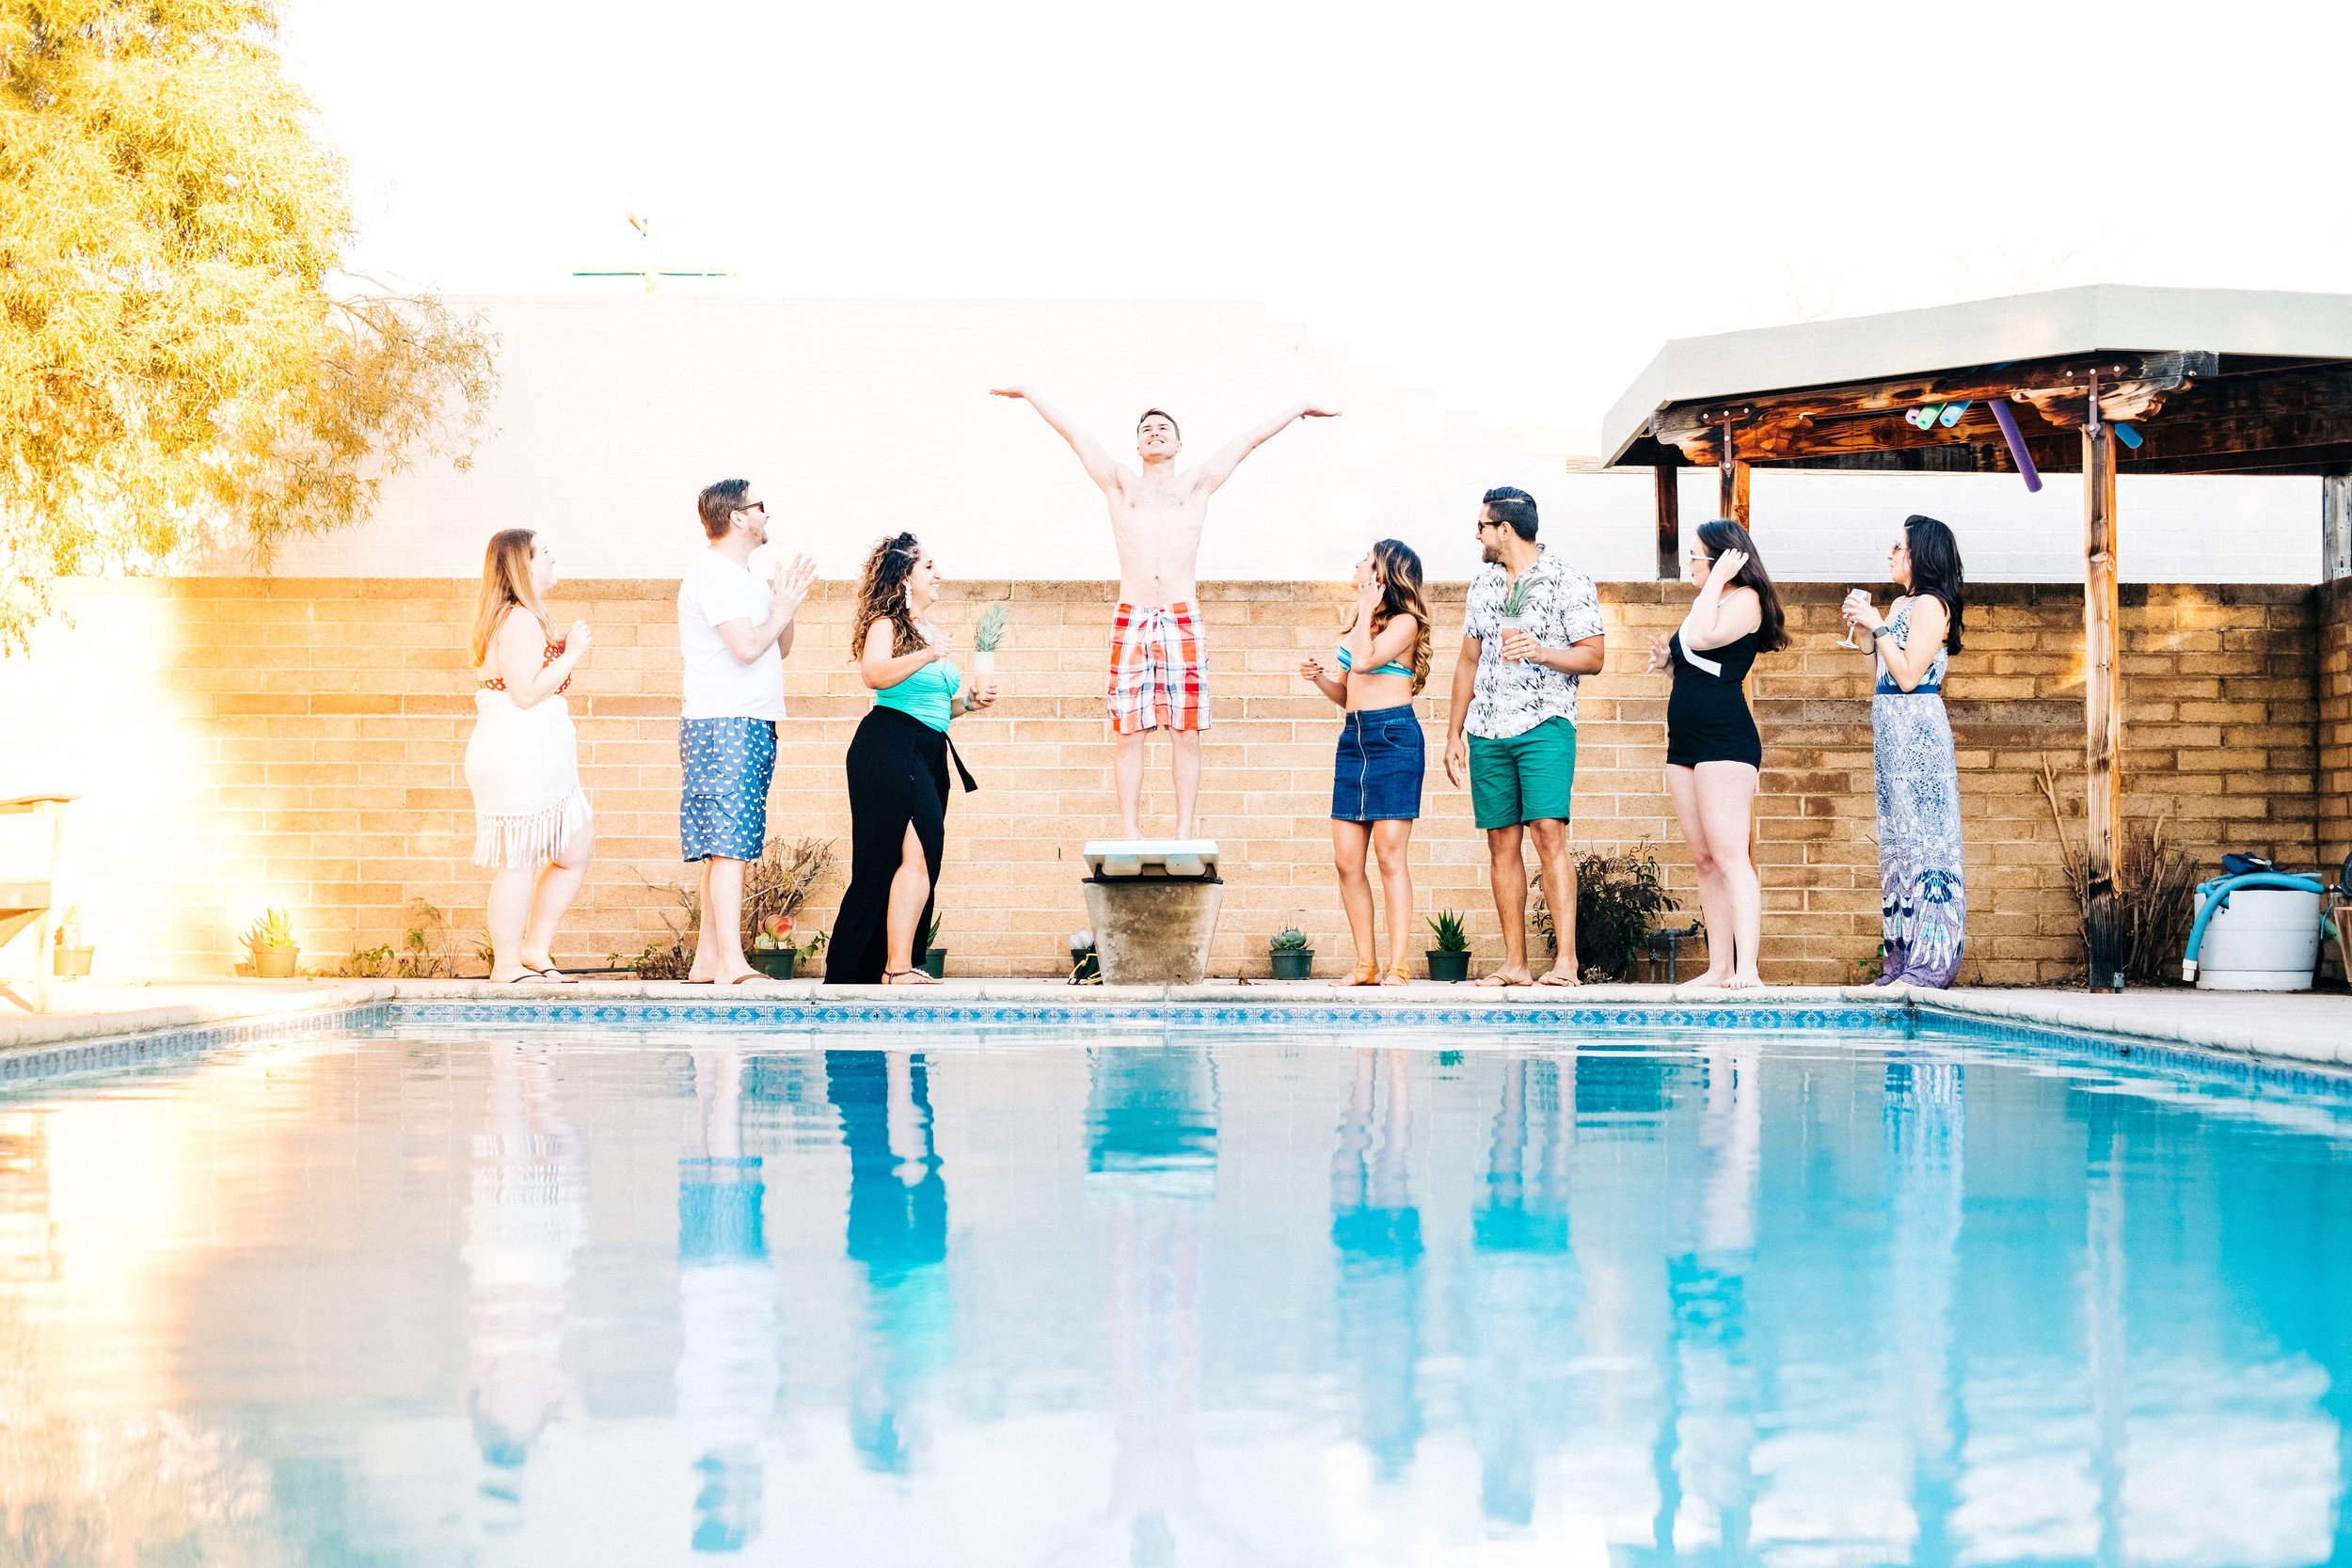 Andy-Shepard-Photography-Tucson-Pool-Party-95.jpg